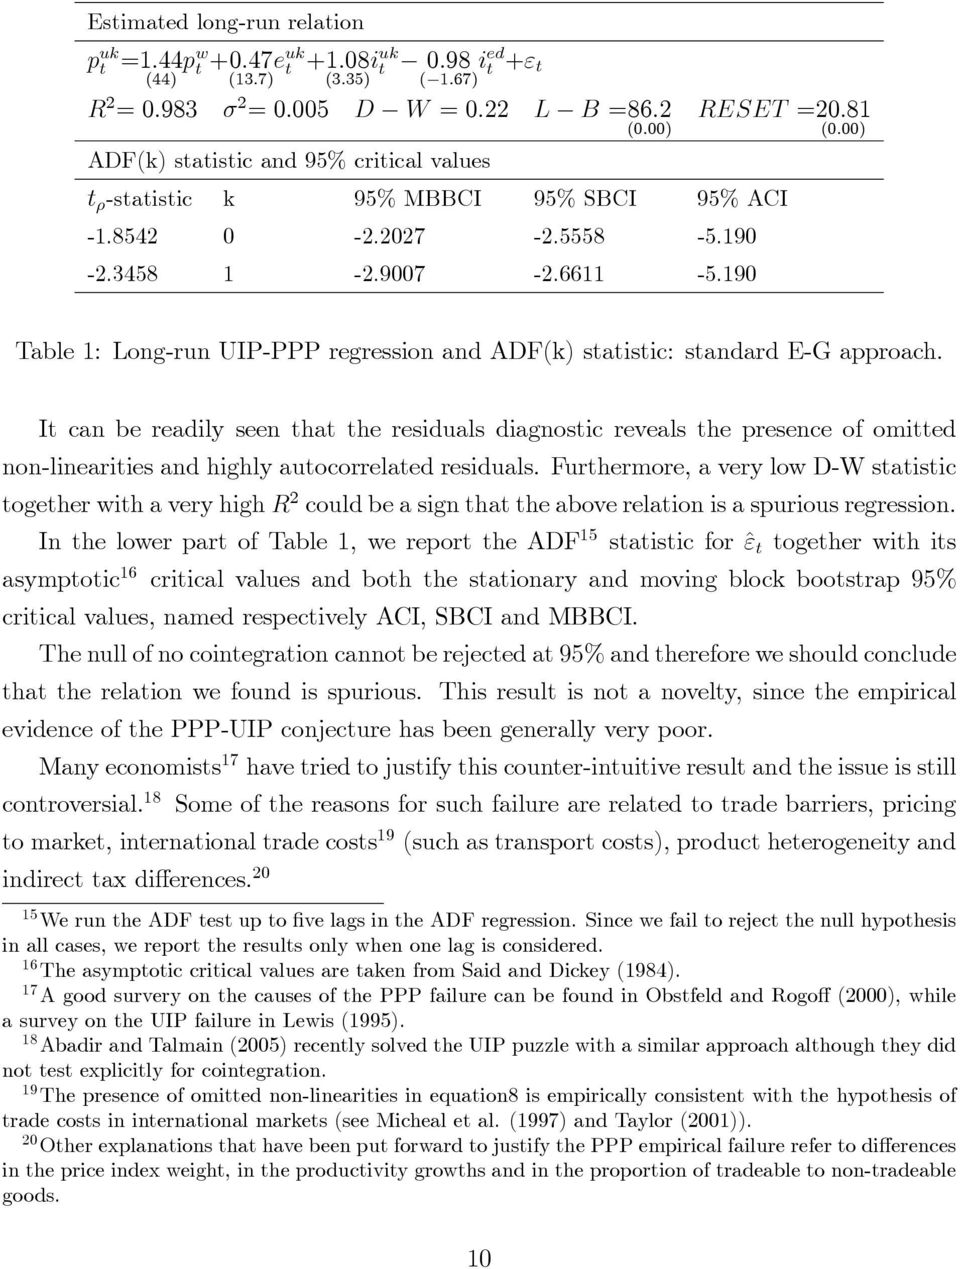 190 Table 1: Long-run UIP-PPP regression and ADF(k) statistic: standard E-G approach.